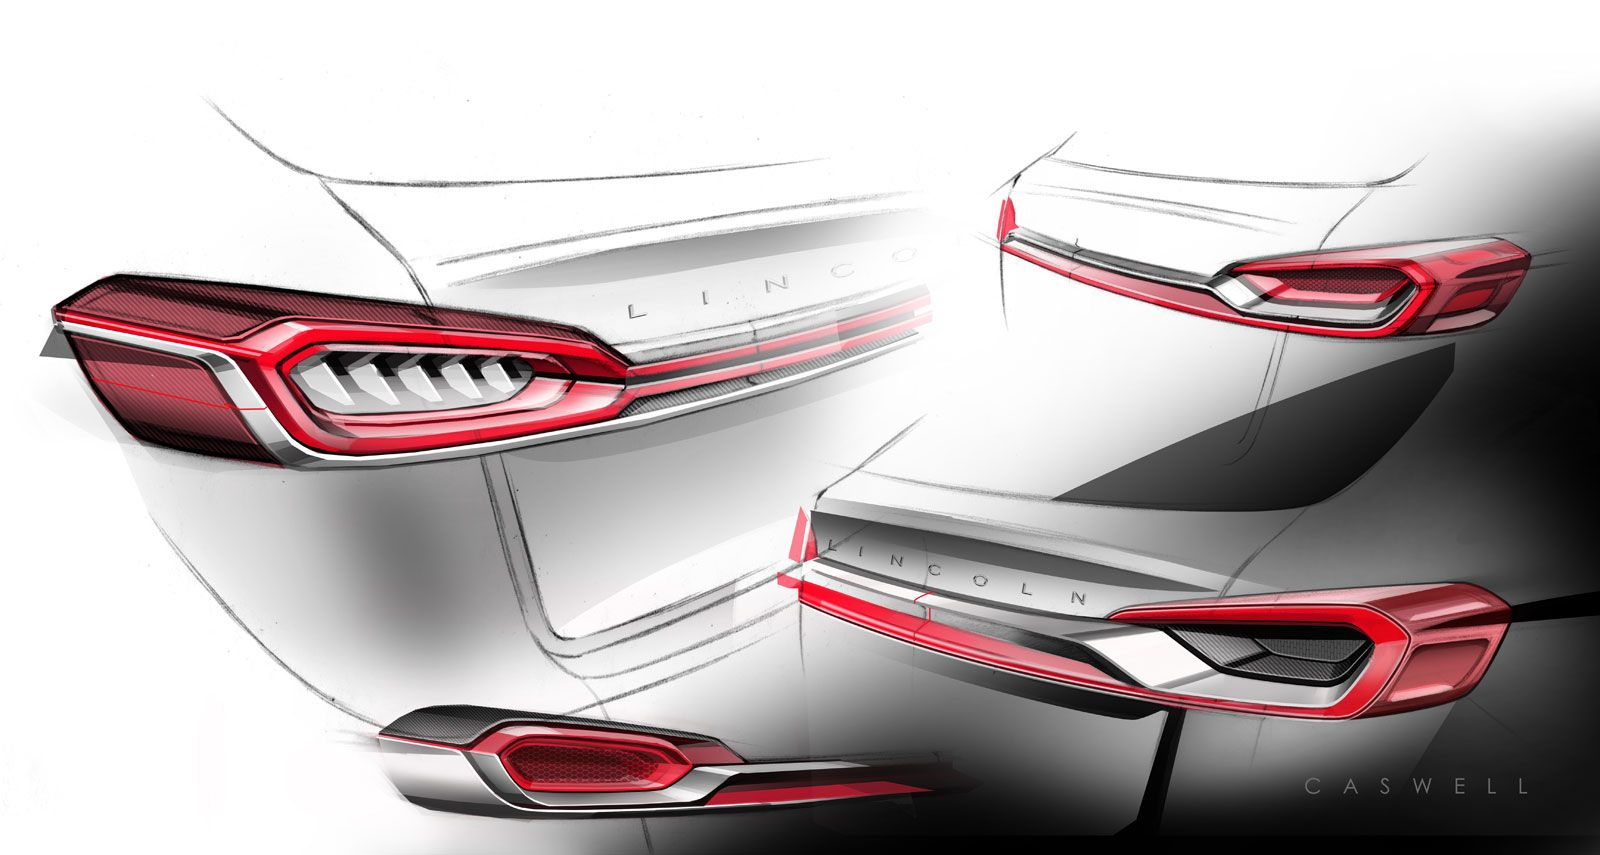 Lincoln Mkx Concept Tail Lamp Ideation Design Sketches Car